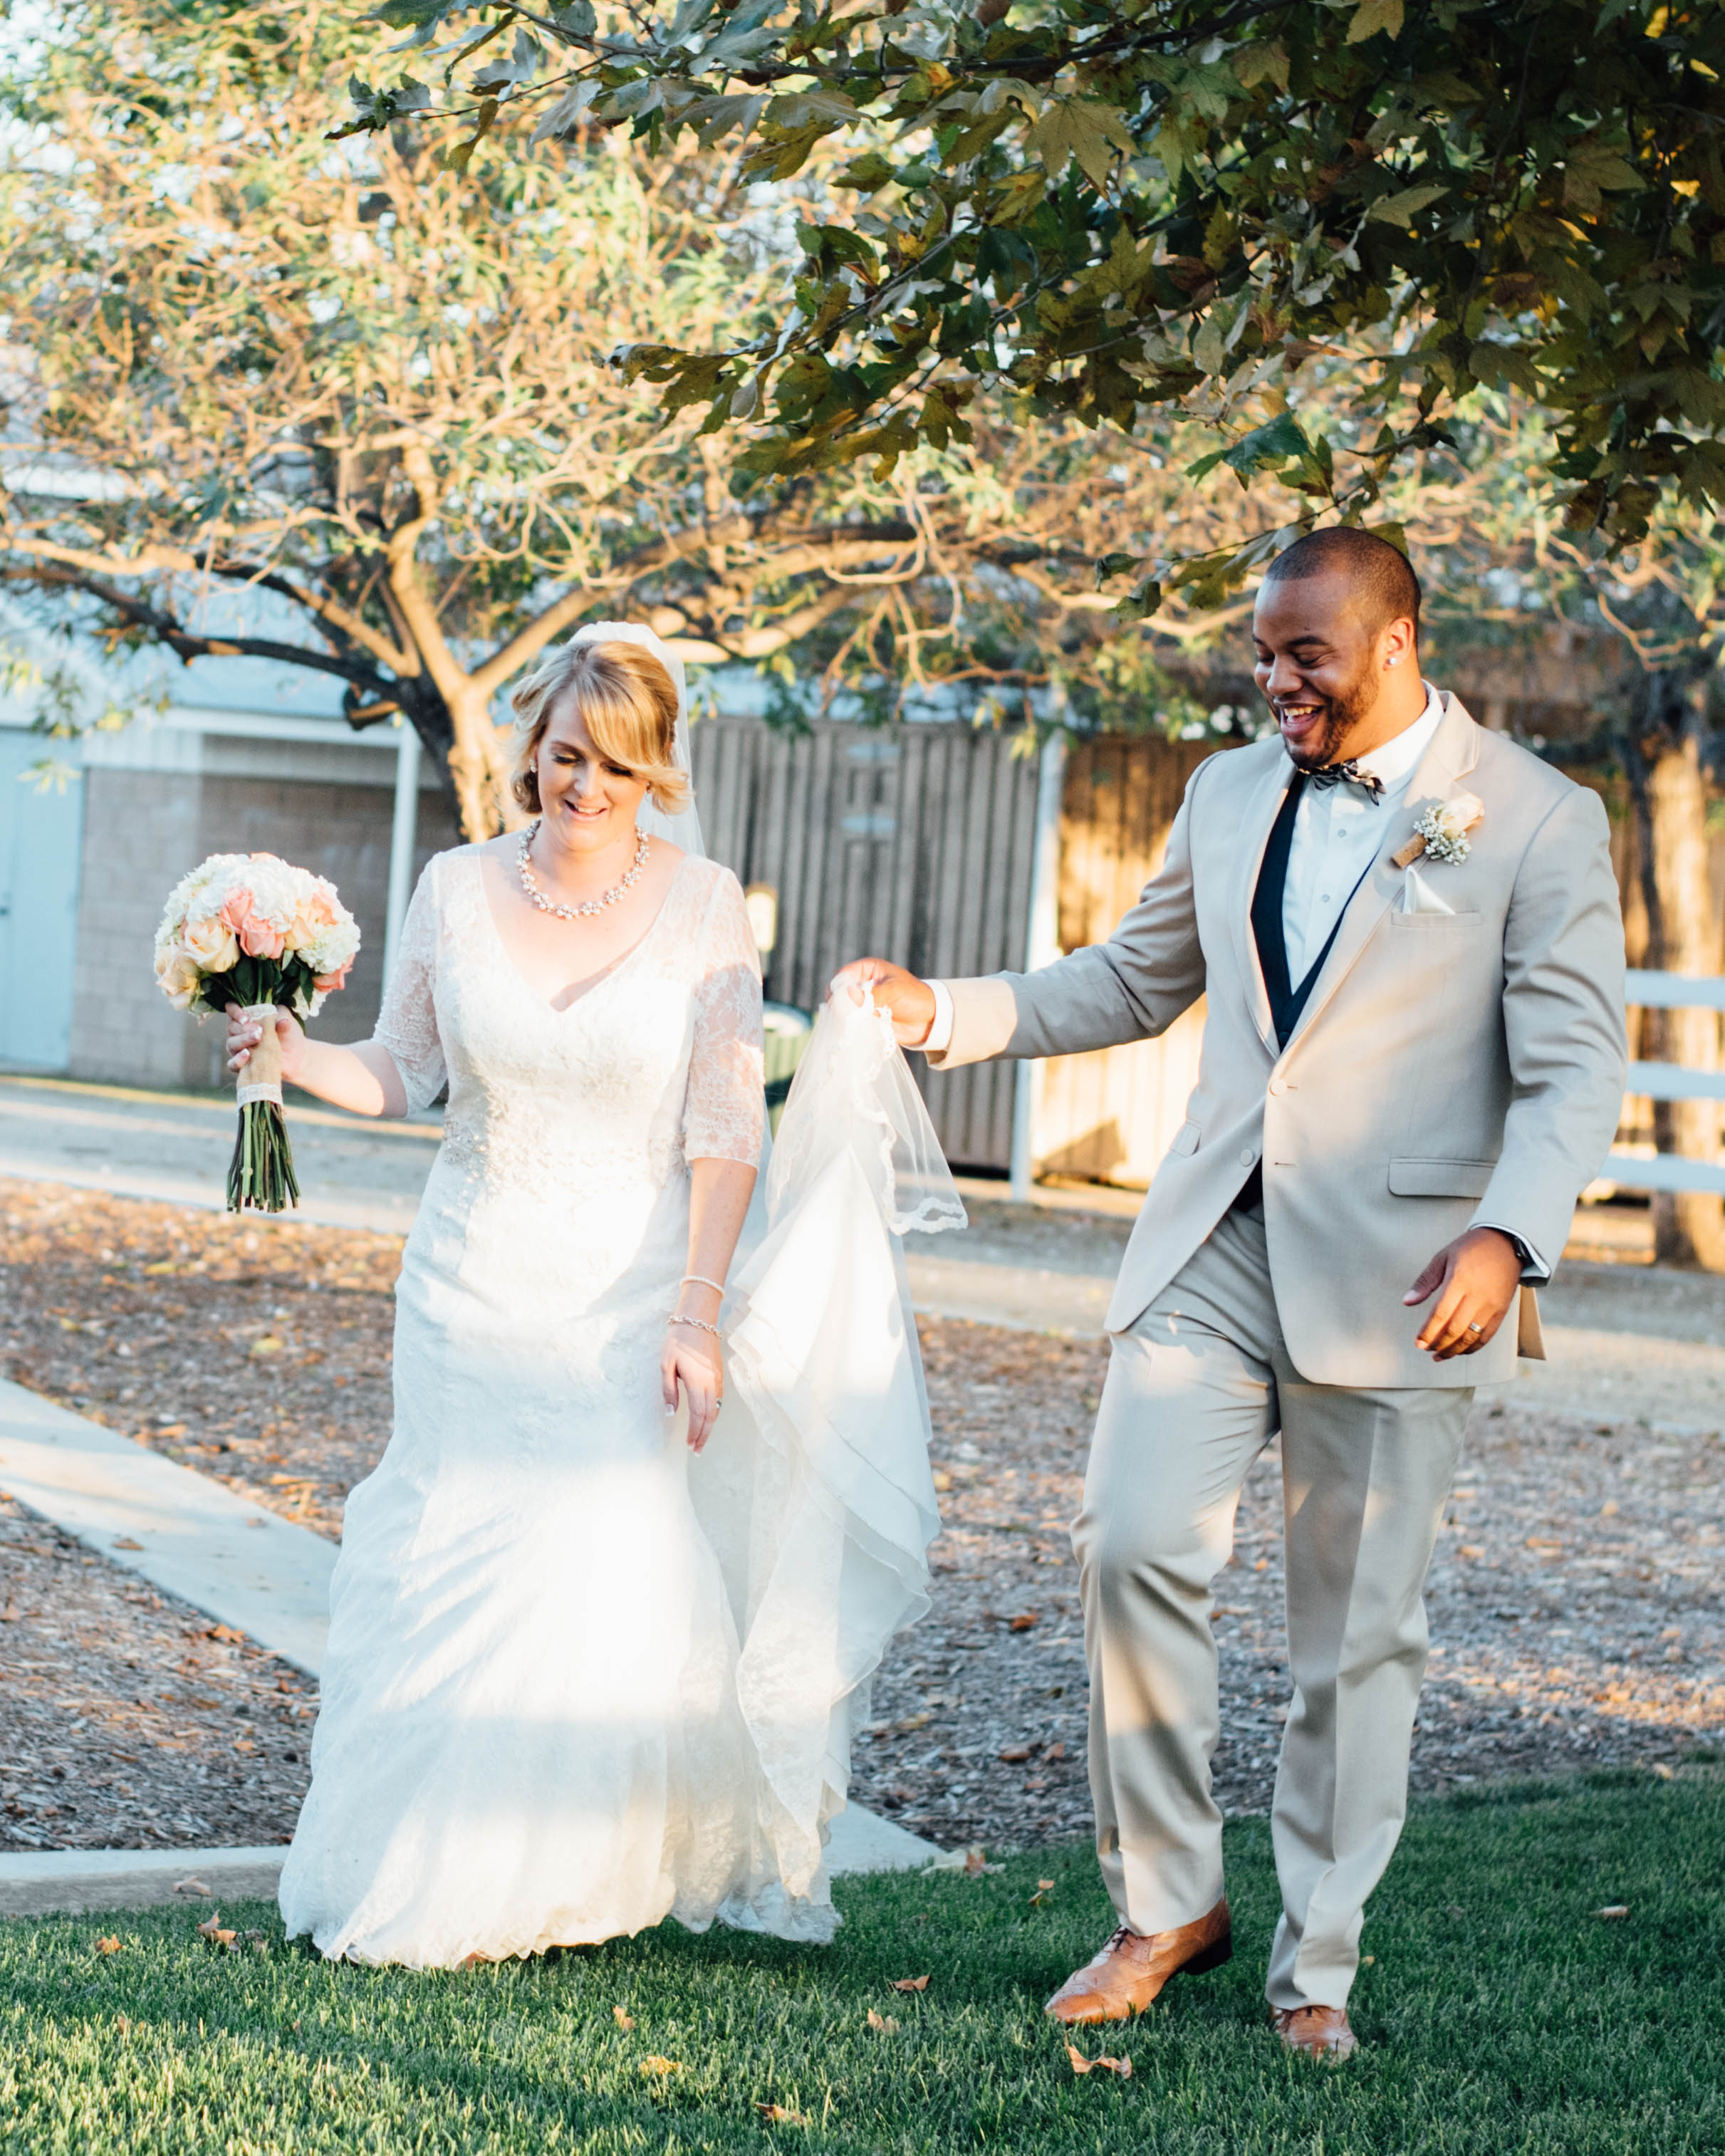 HuntleyWedding10.10.15ks-299.jpg